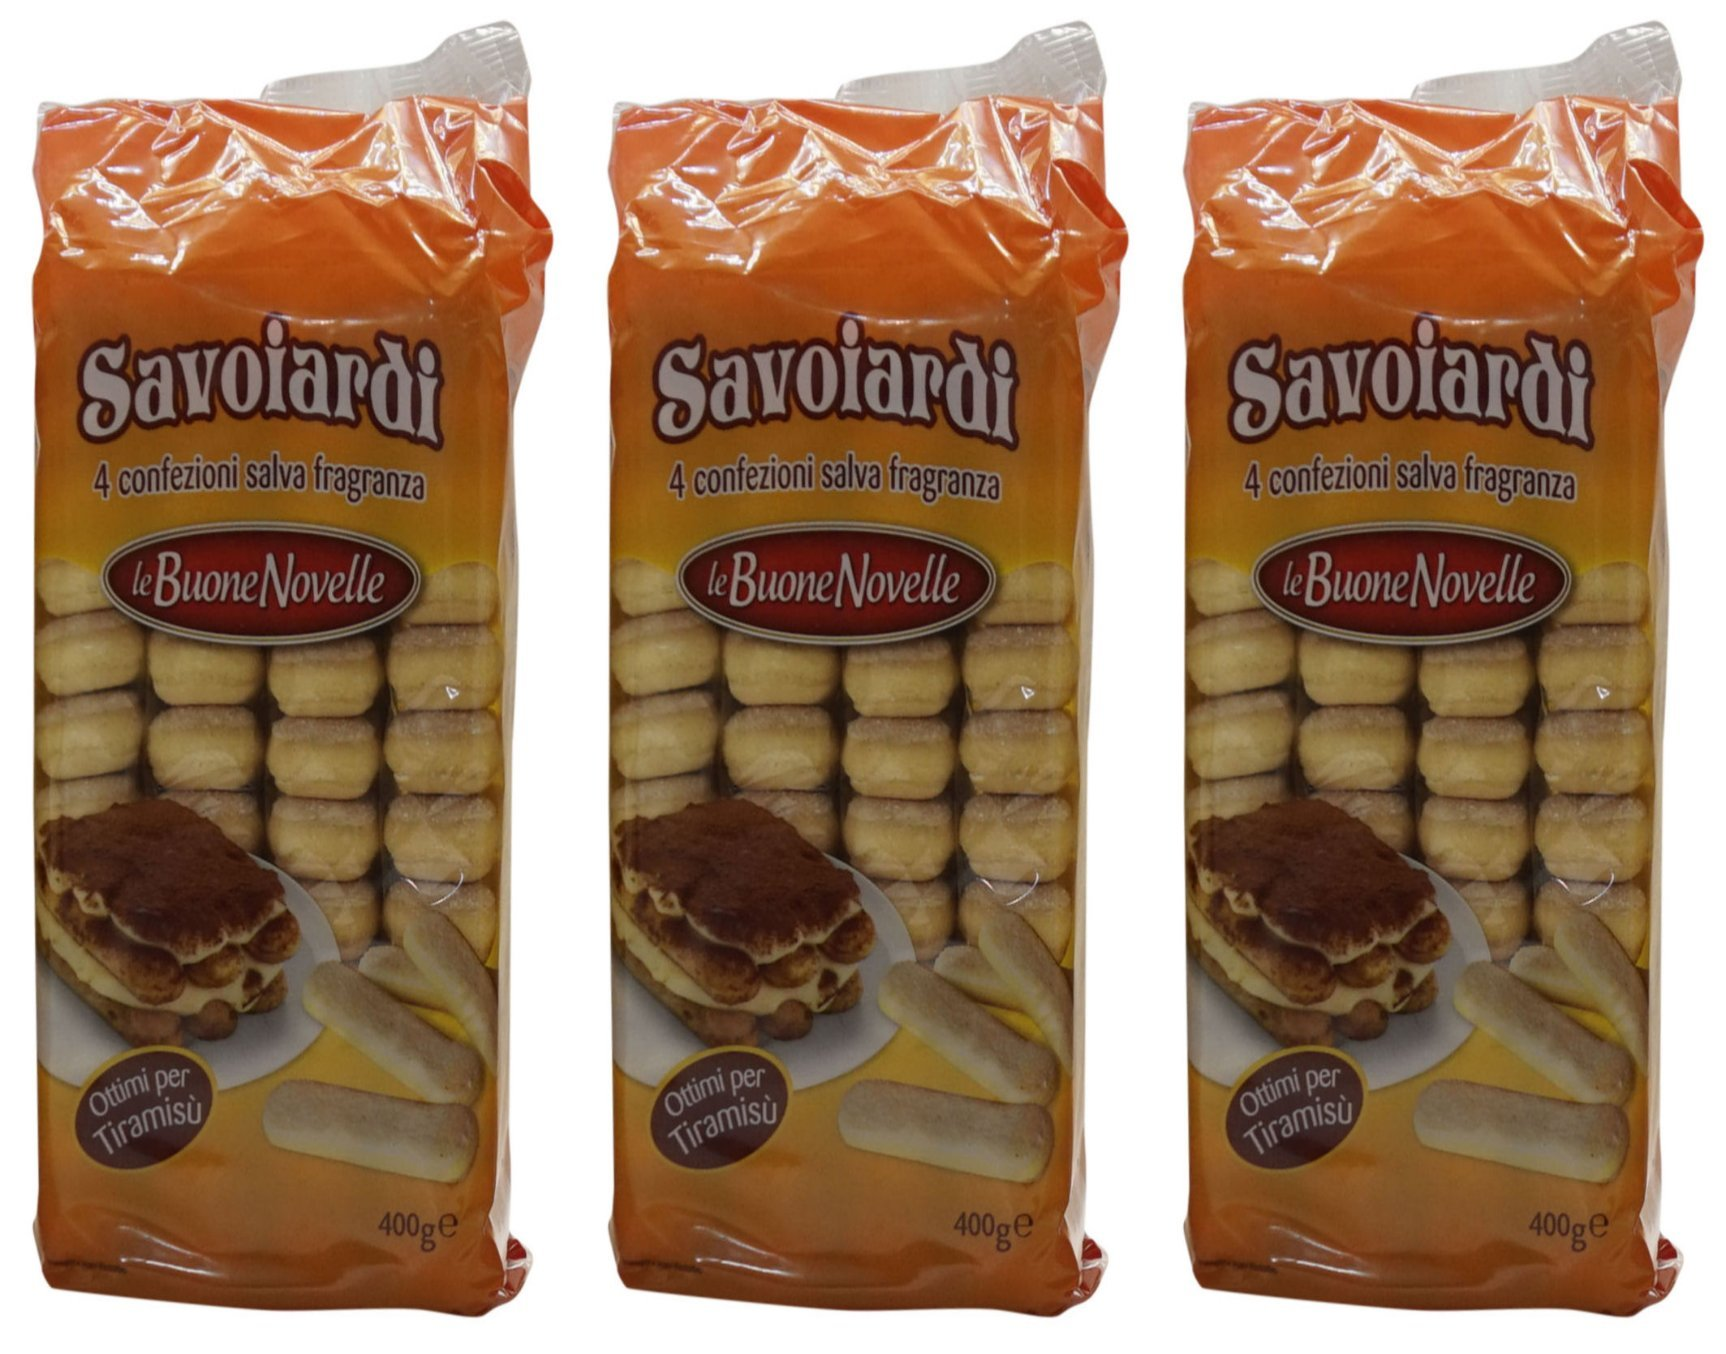 La Buone Novelle: '' Savoiardi'' Ladyfingers (in British English Sponge Fingers) 14.10 Ounce (400gr) Packages (Pack of 3) [ Italian Import ] by Le Buone Novelle